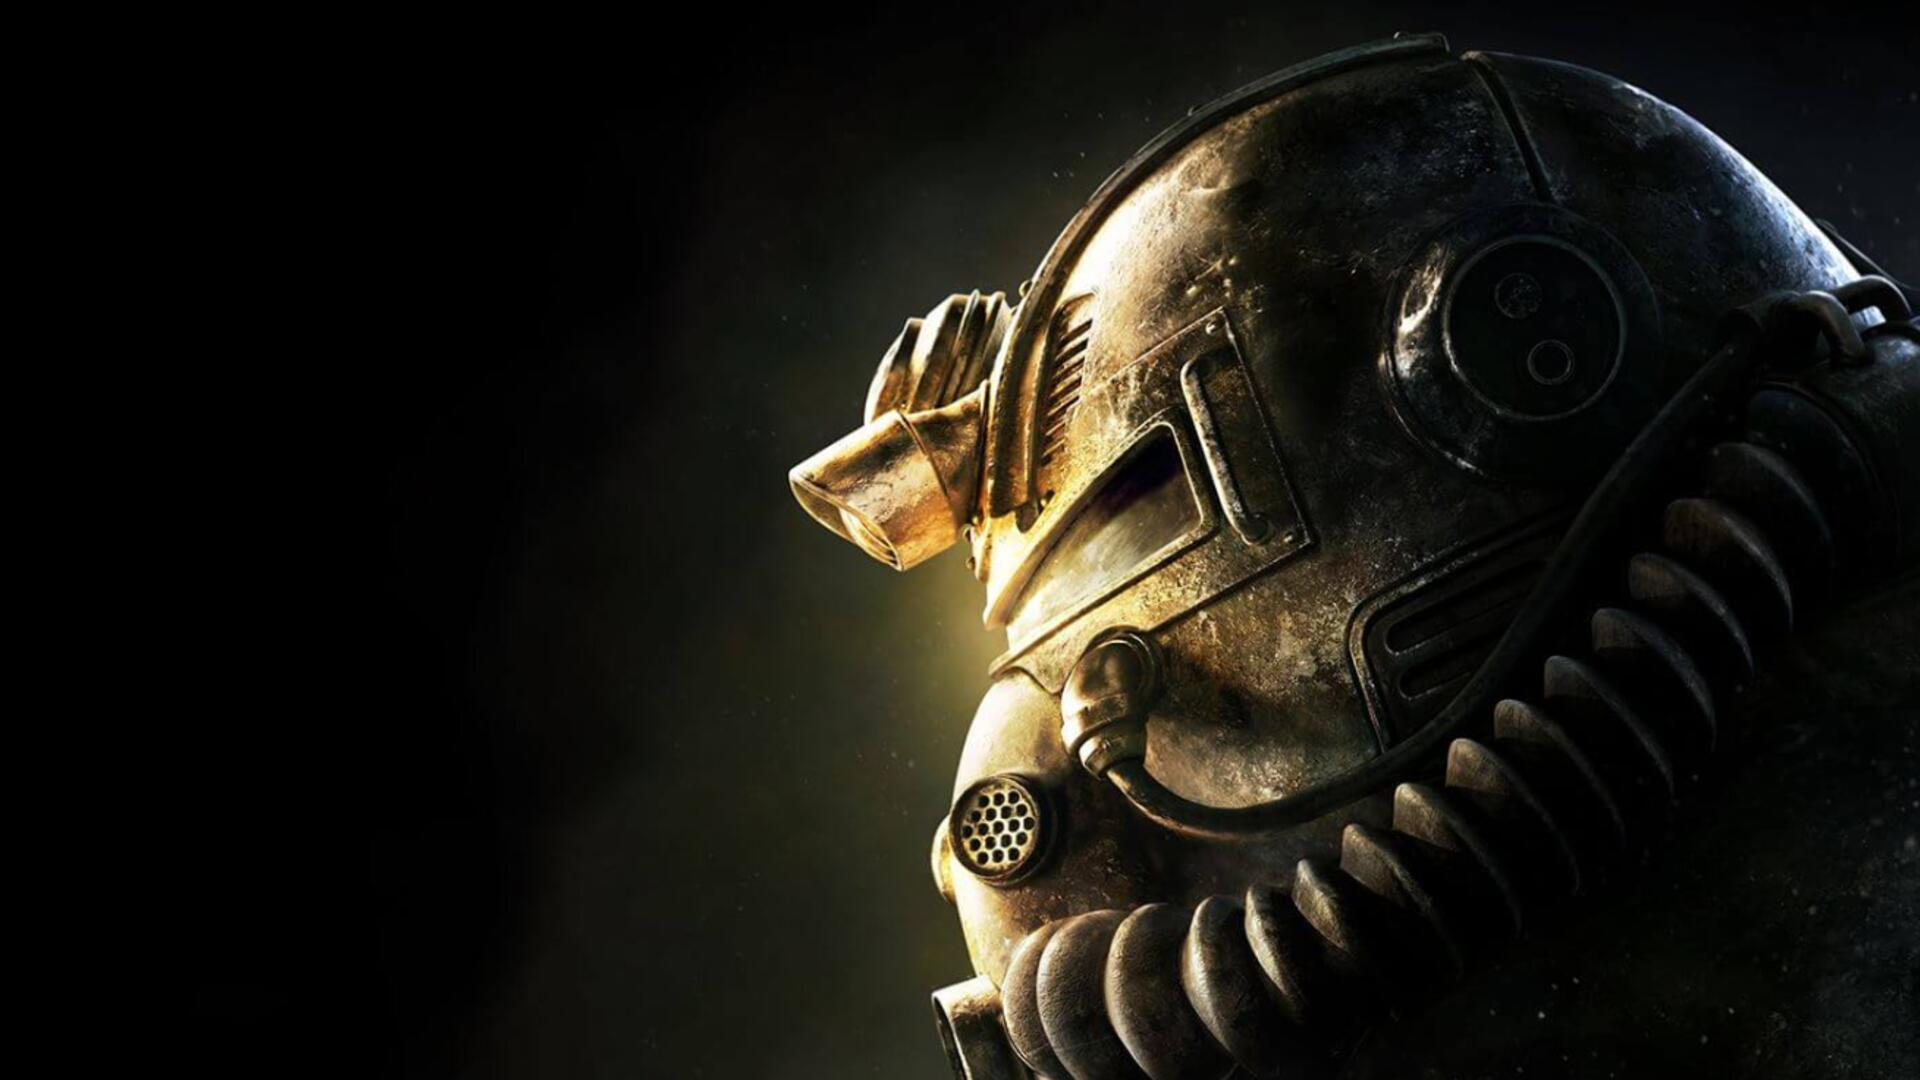 Fallout 76 Will Have More Vaults That Open Post-Launch